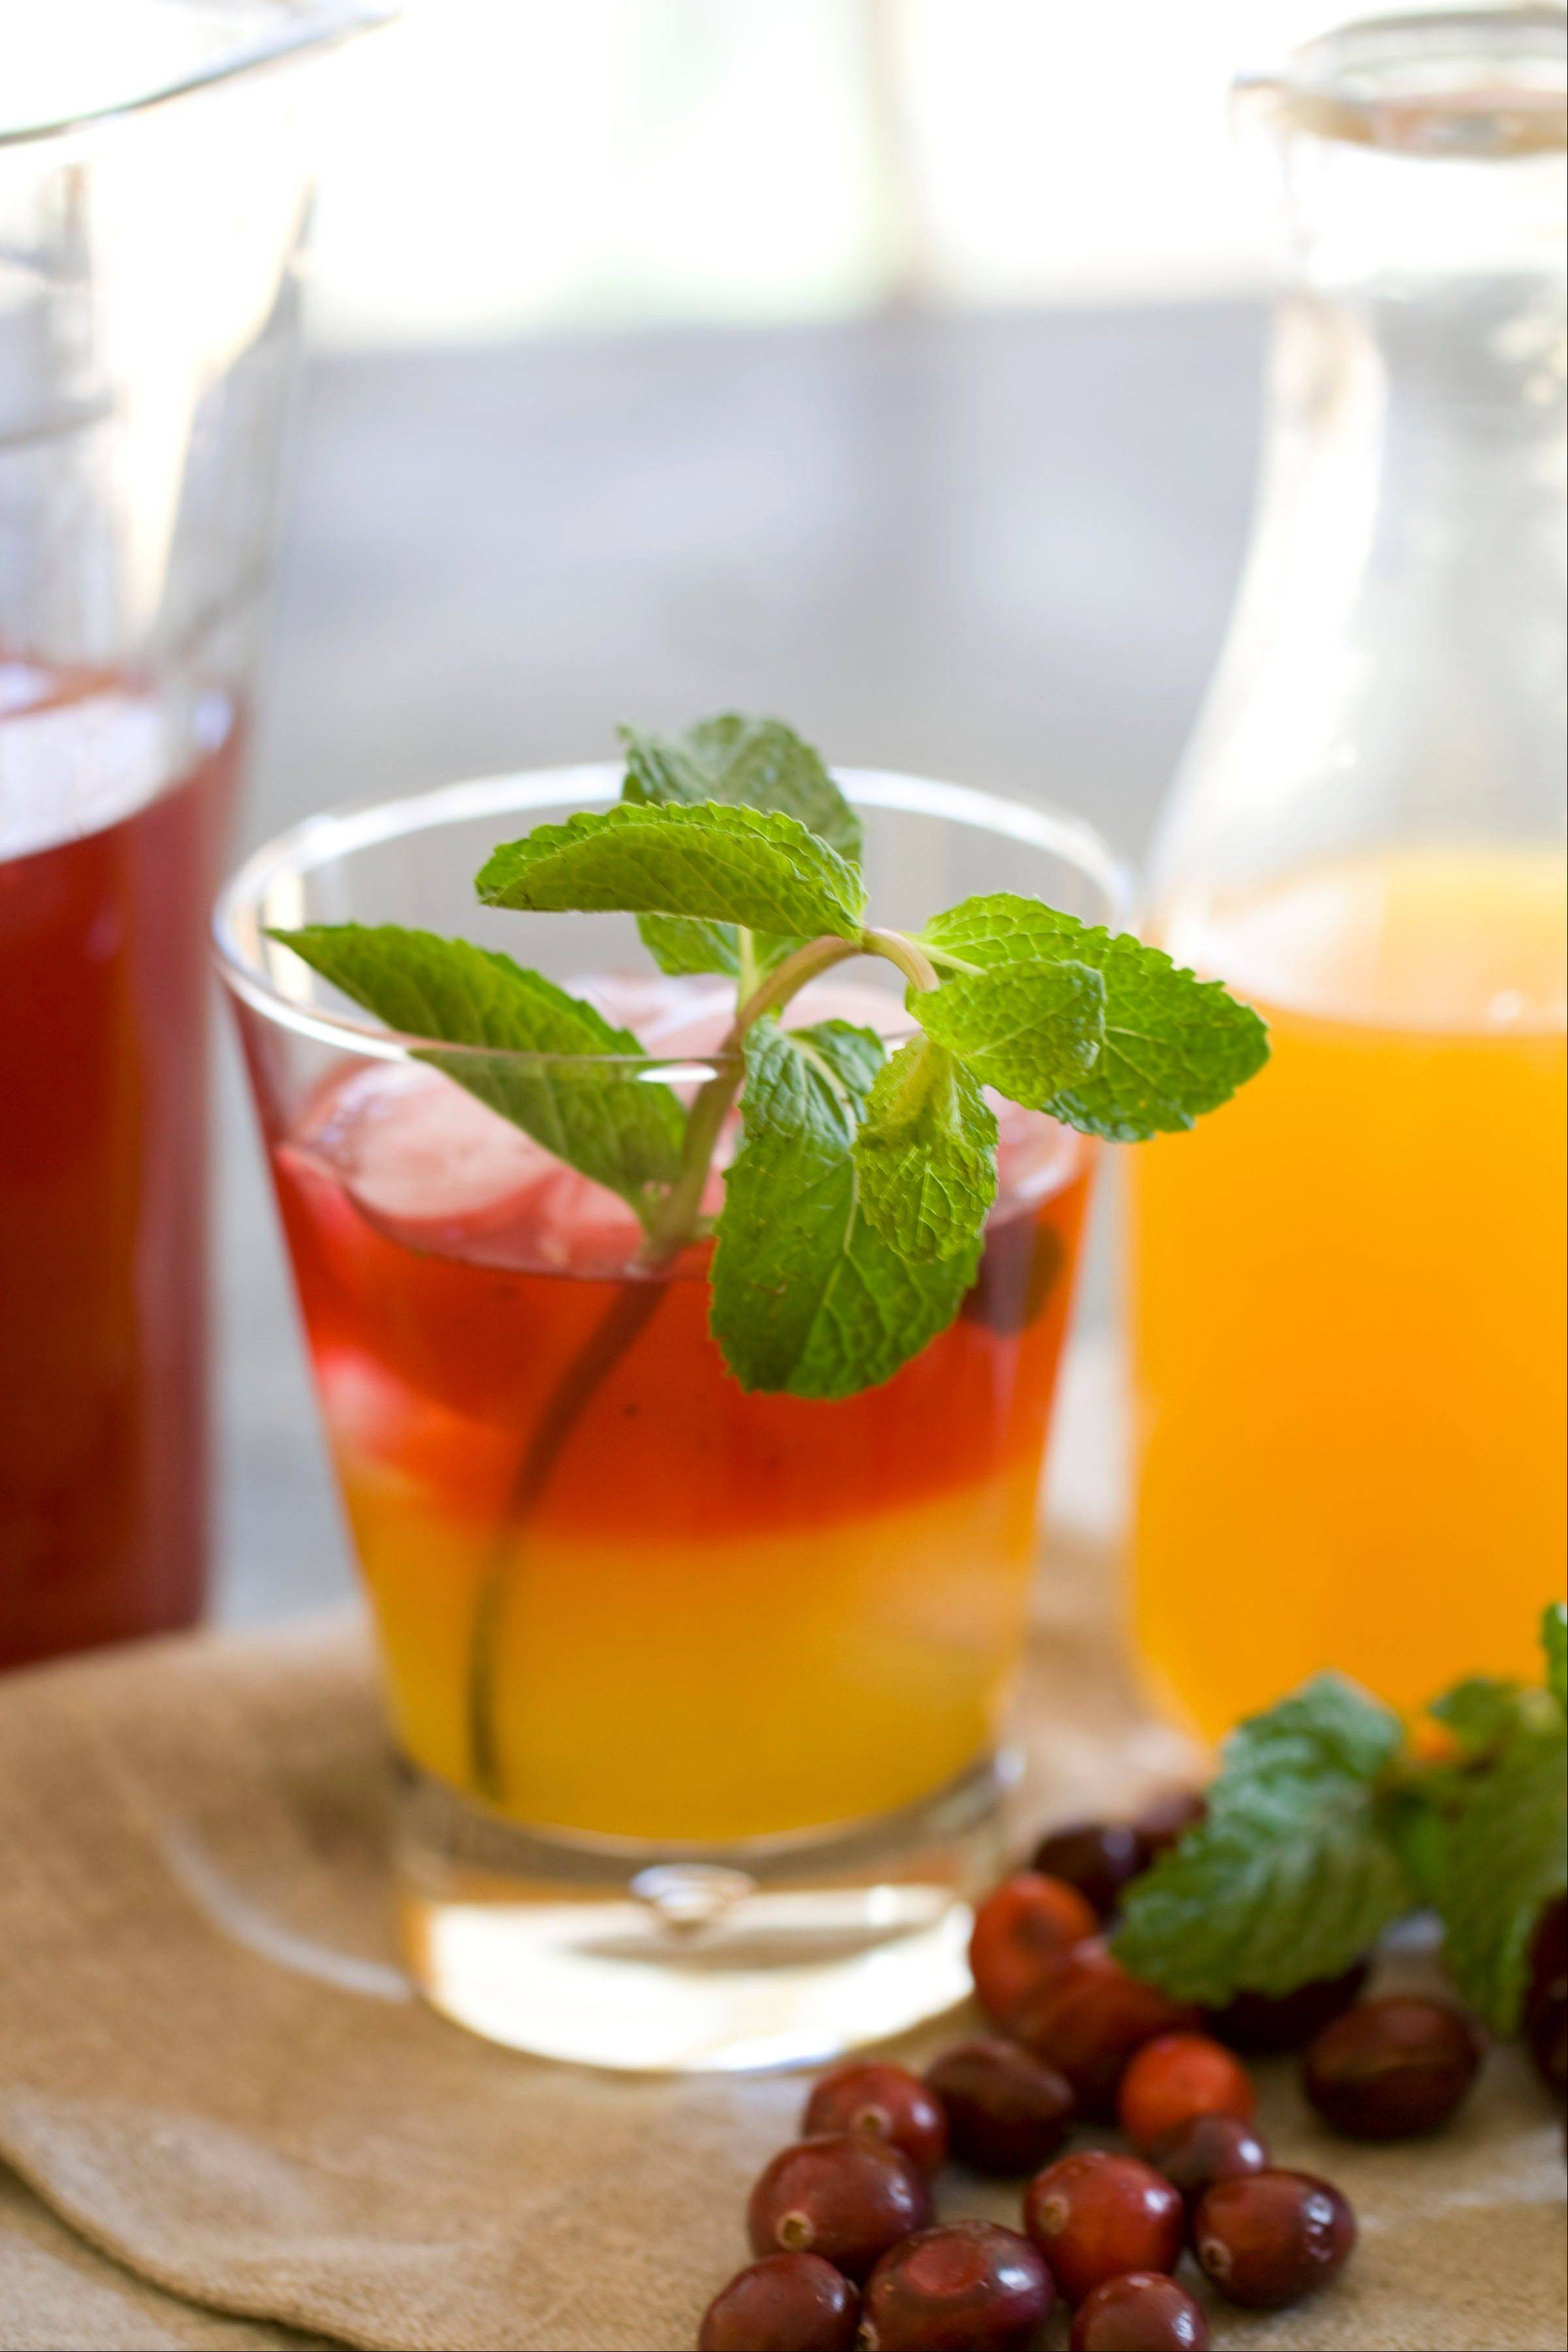 Cranberry-Mint Infused Margaritas are sweetened with agave nectar.